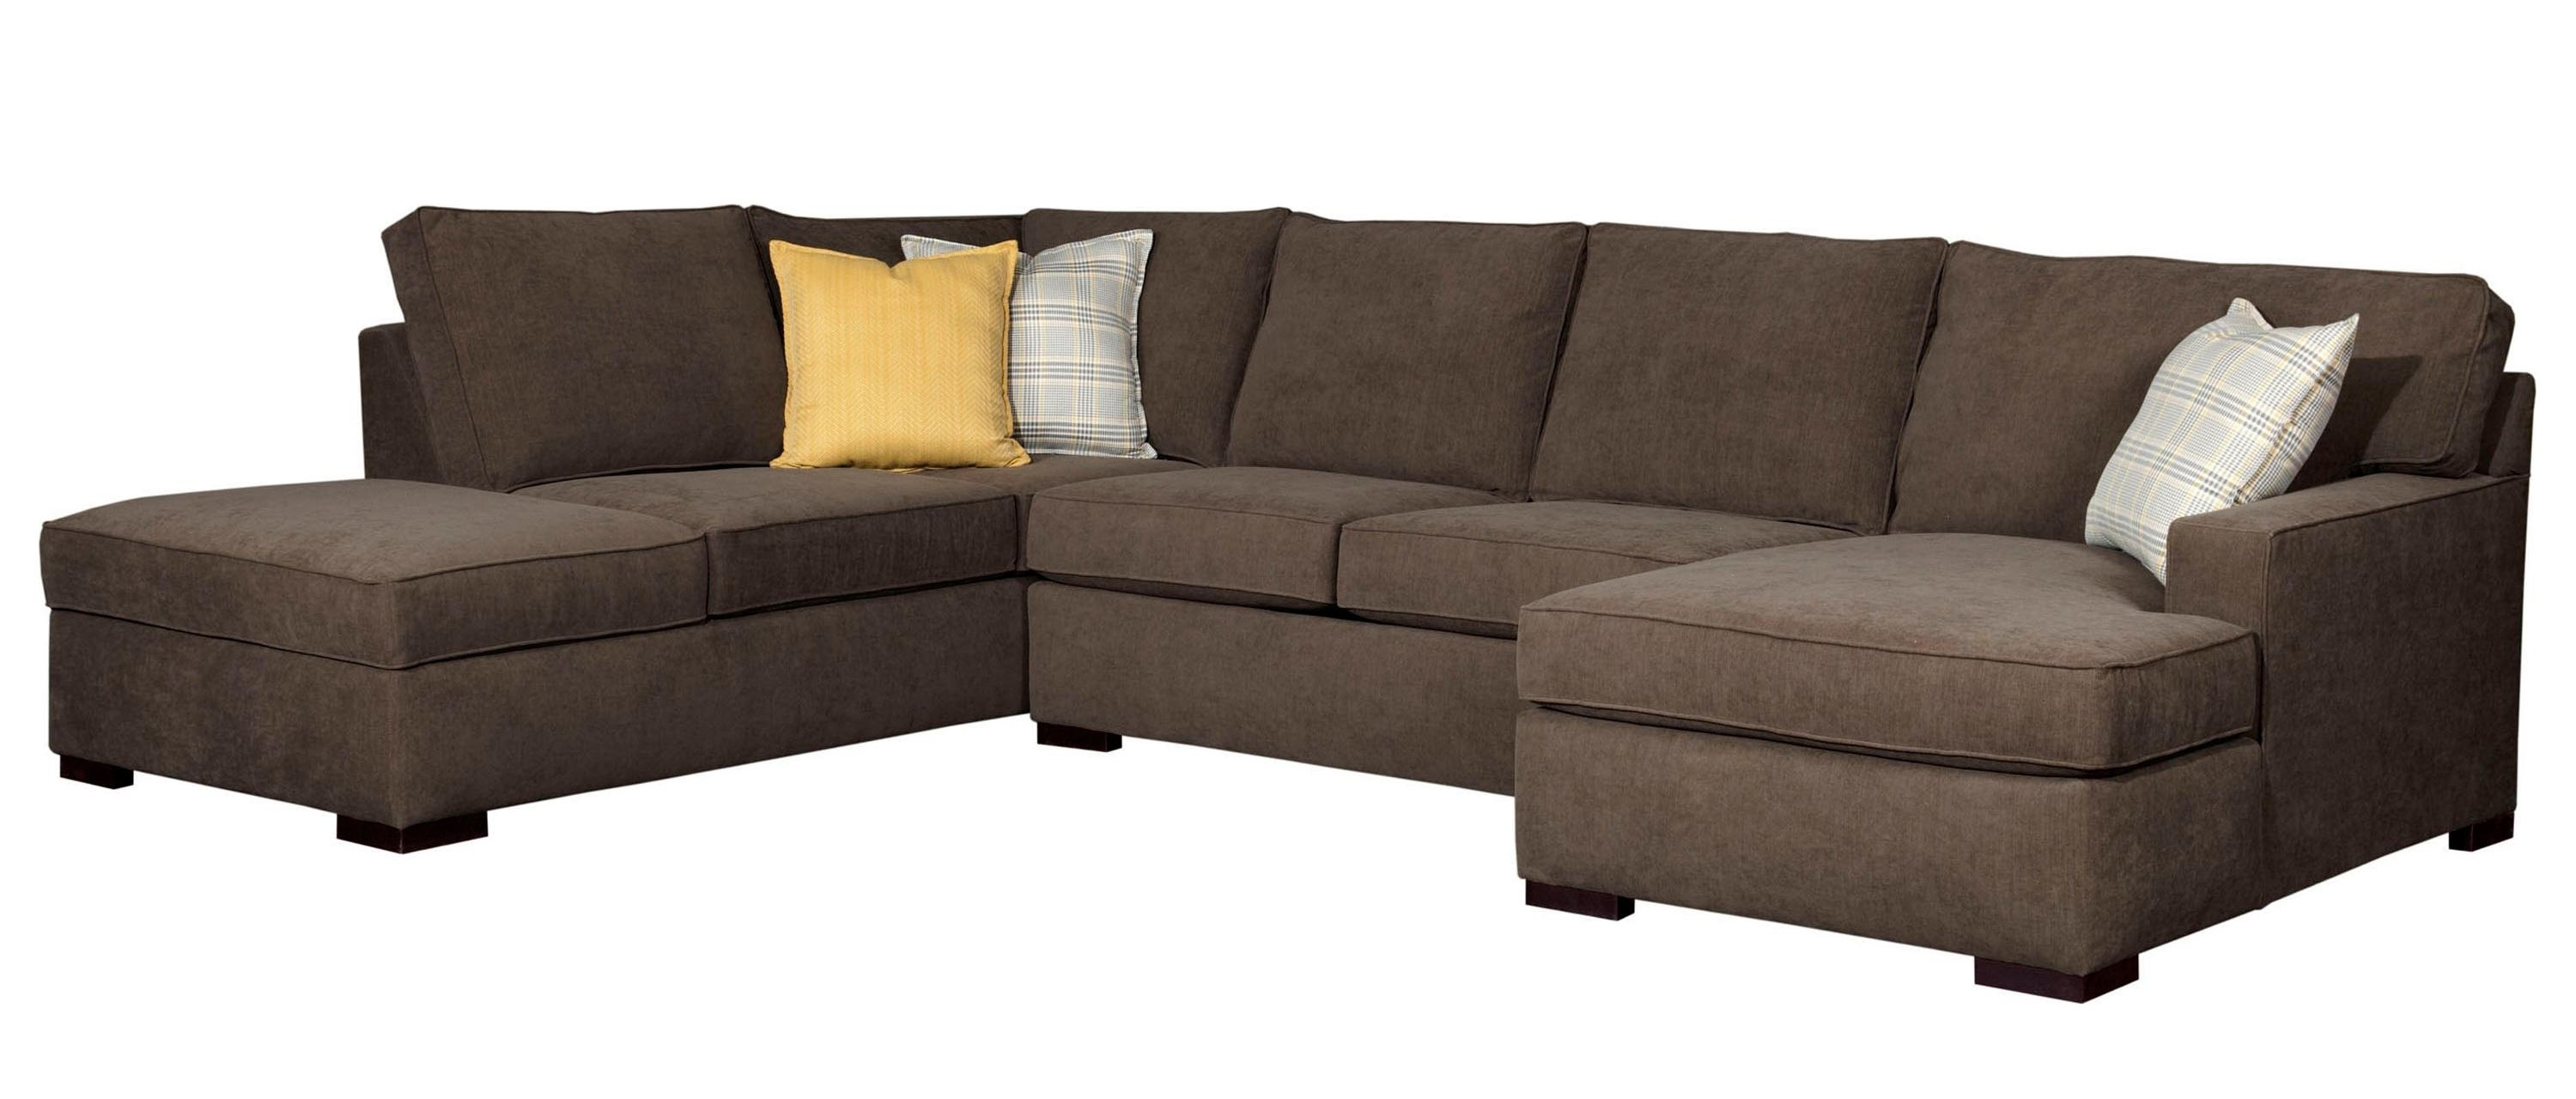 Newest Broyhill Sectional Sofas In Broyhill Furniture Raphael Contemporary Sectional Sofa With Laf (View 3 of 20)